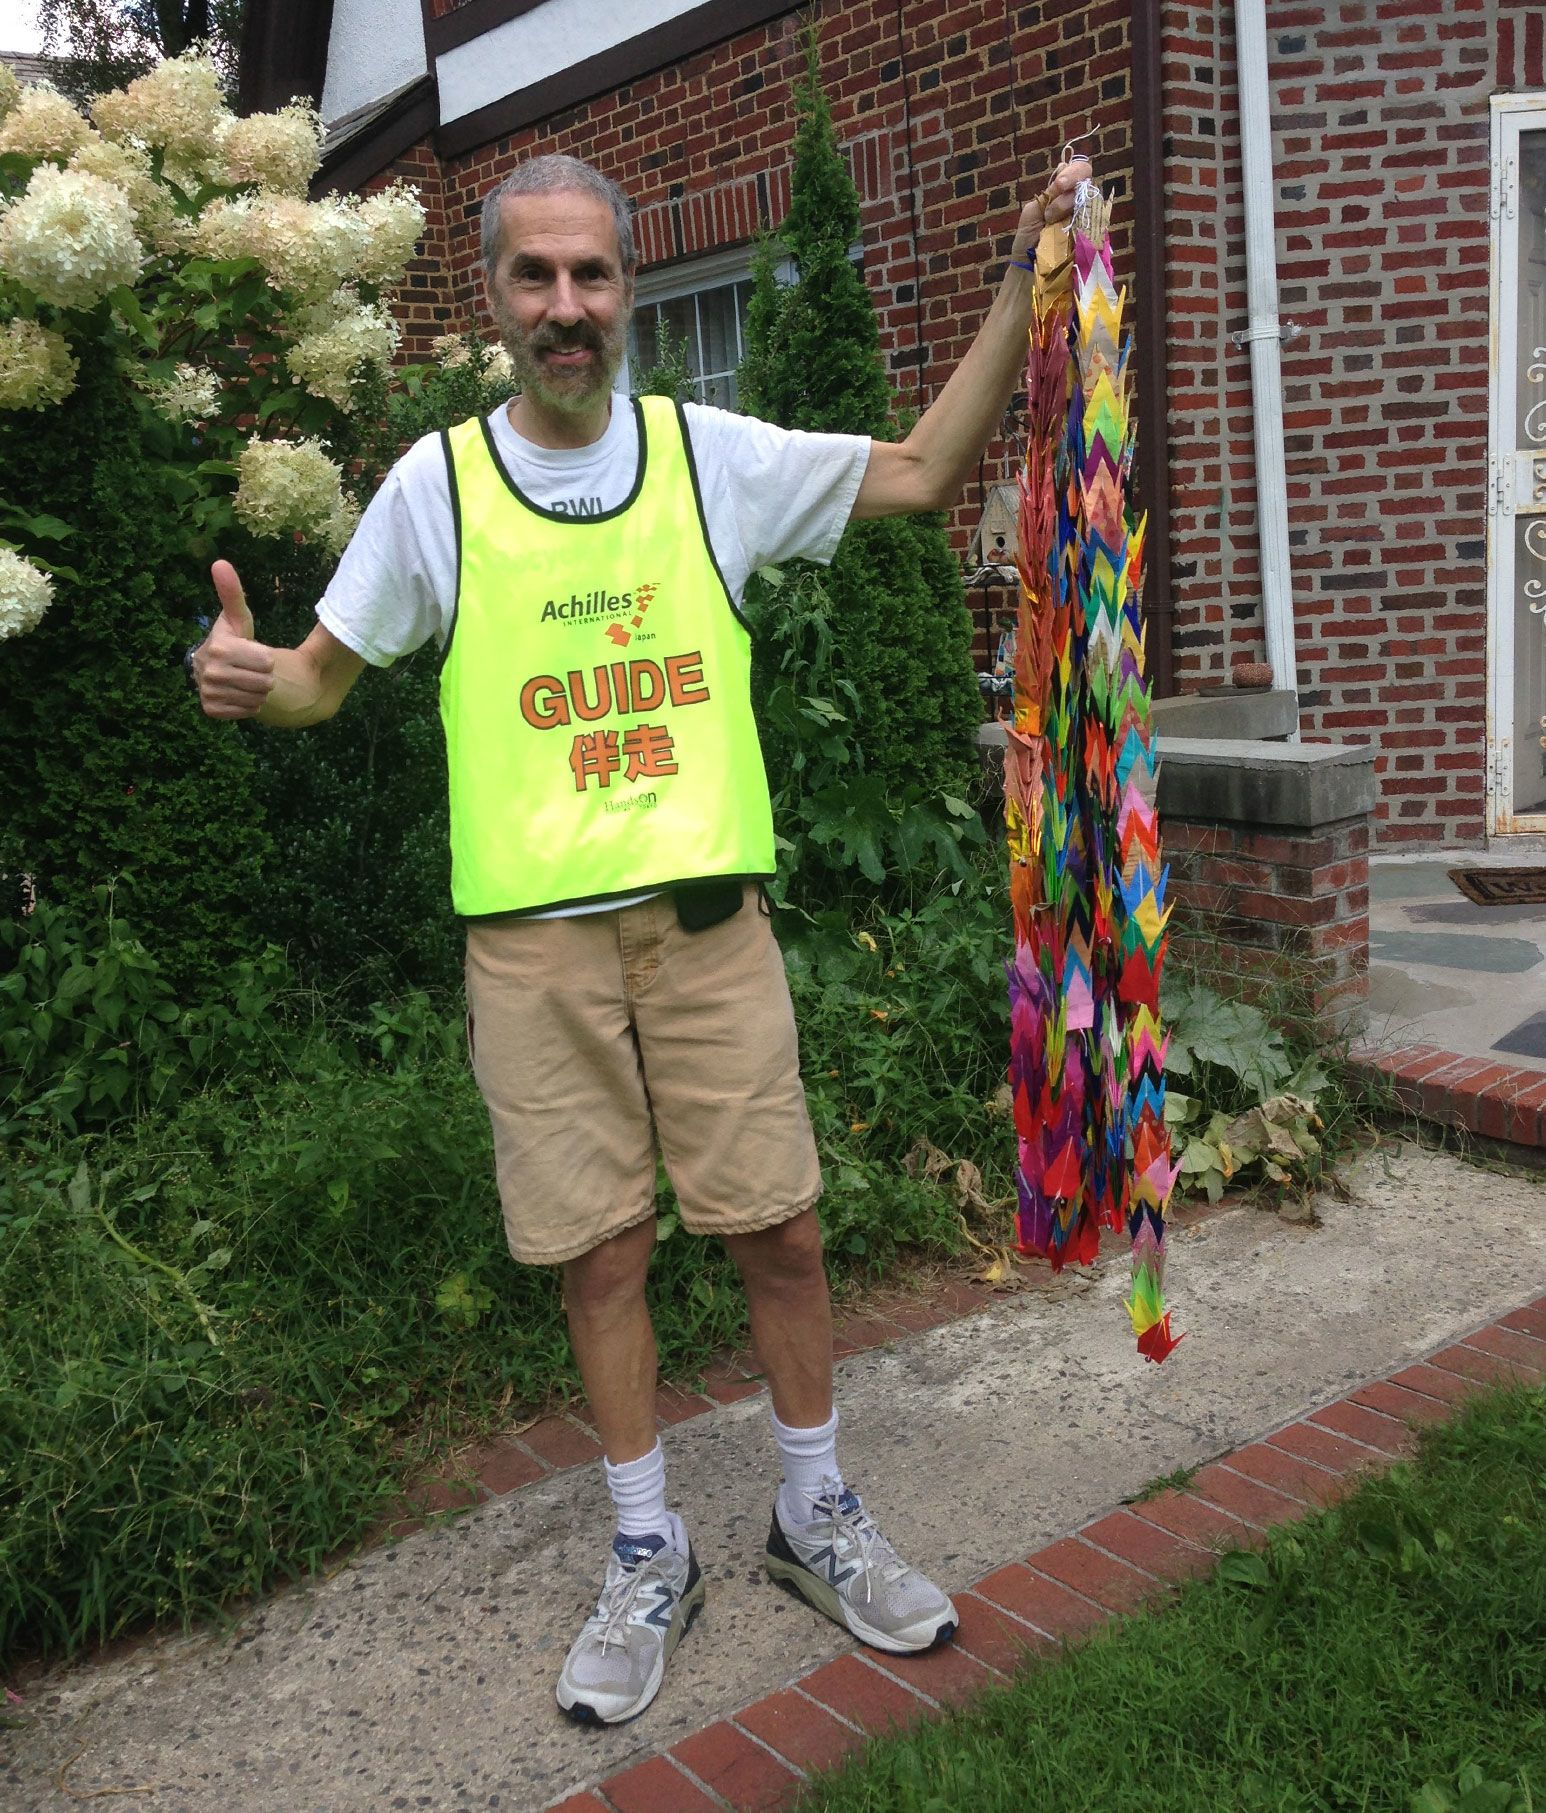 A tall skinny man wearing beige pants, a green vest, with a scraggly gray beard and shaved head gives a numbs up at the camera with one hand while holding a ribbon of paper cranes on the other.